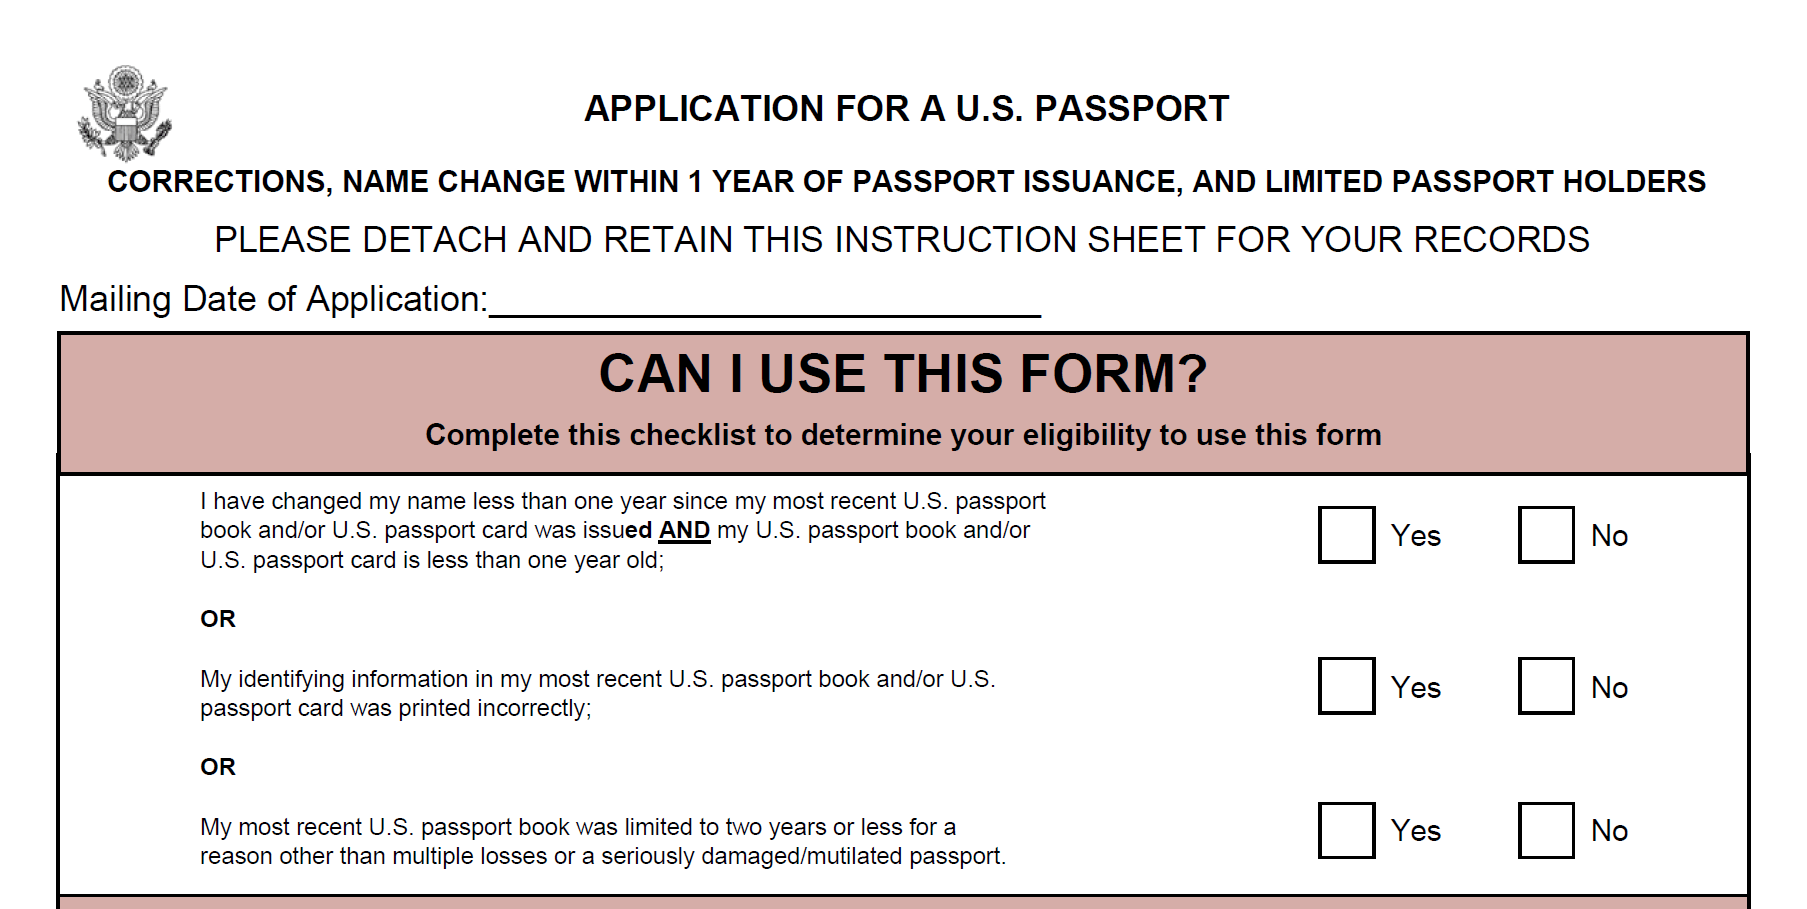 Form DS-5504: Application for a U.S. Passport